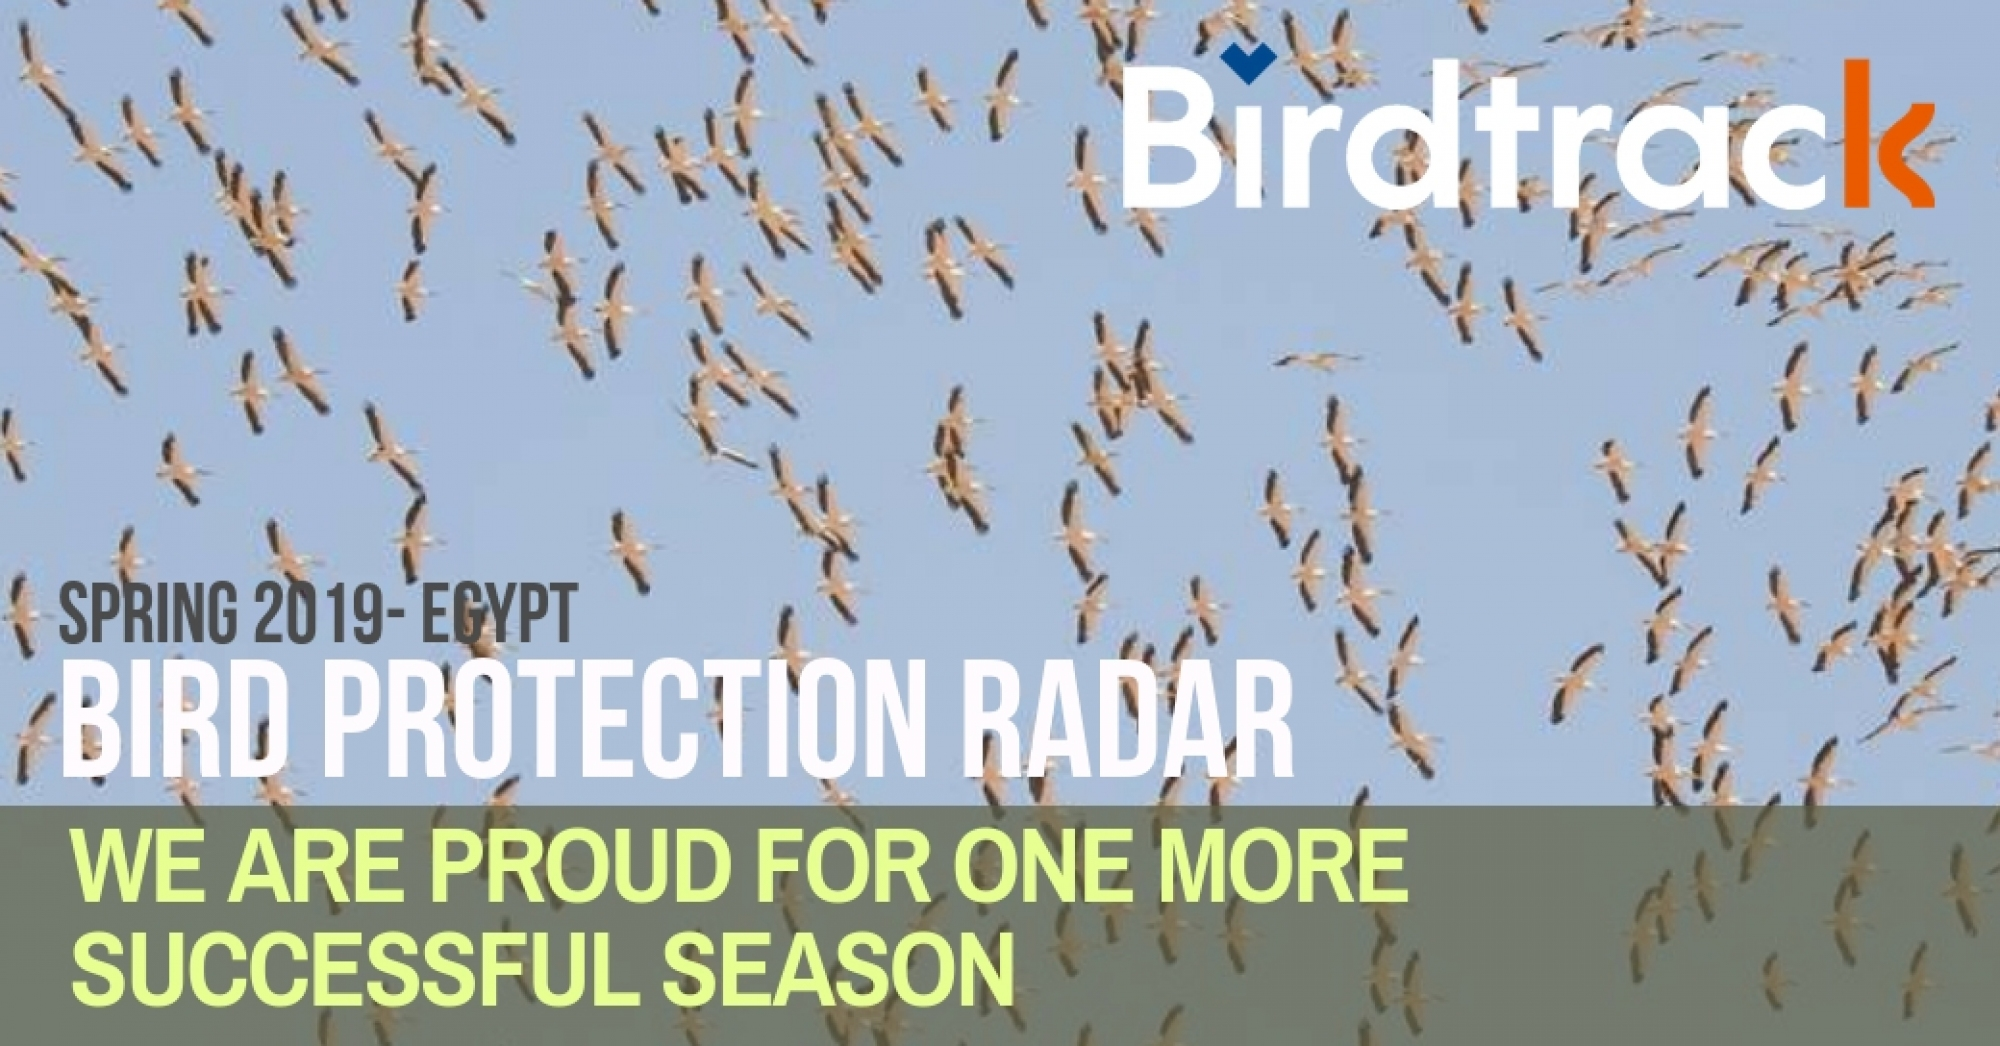 Birdtrack Campaign Successfully Completed